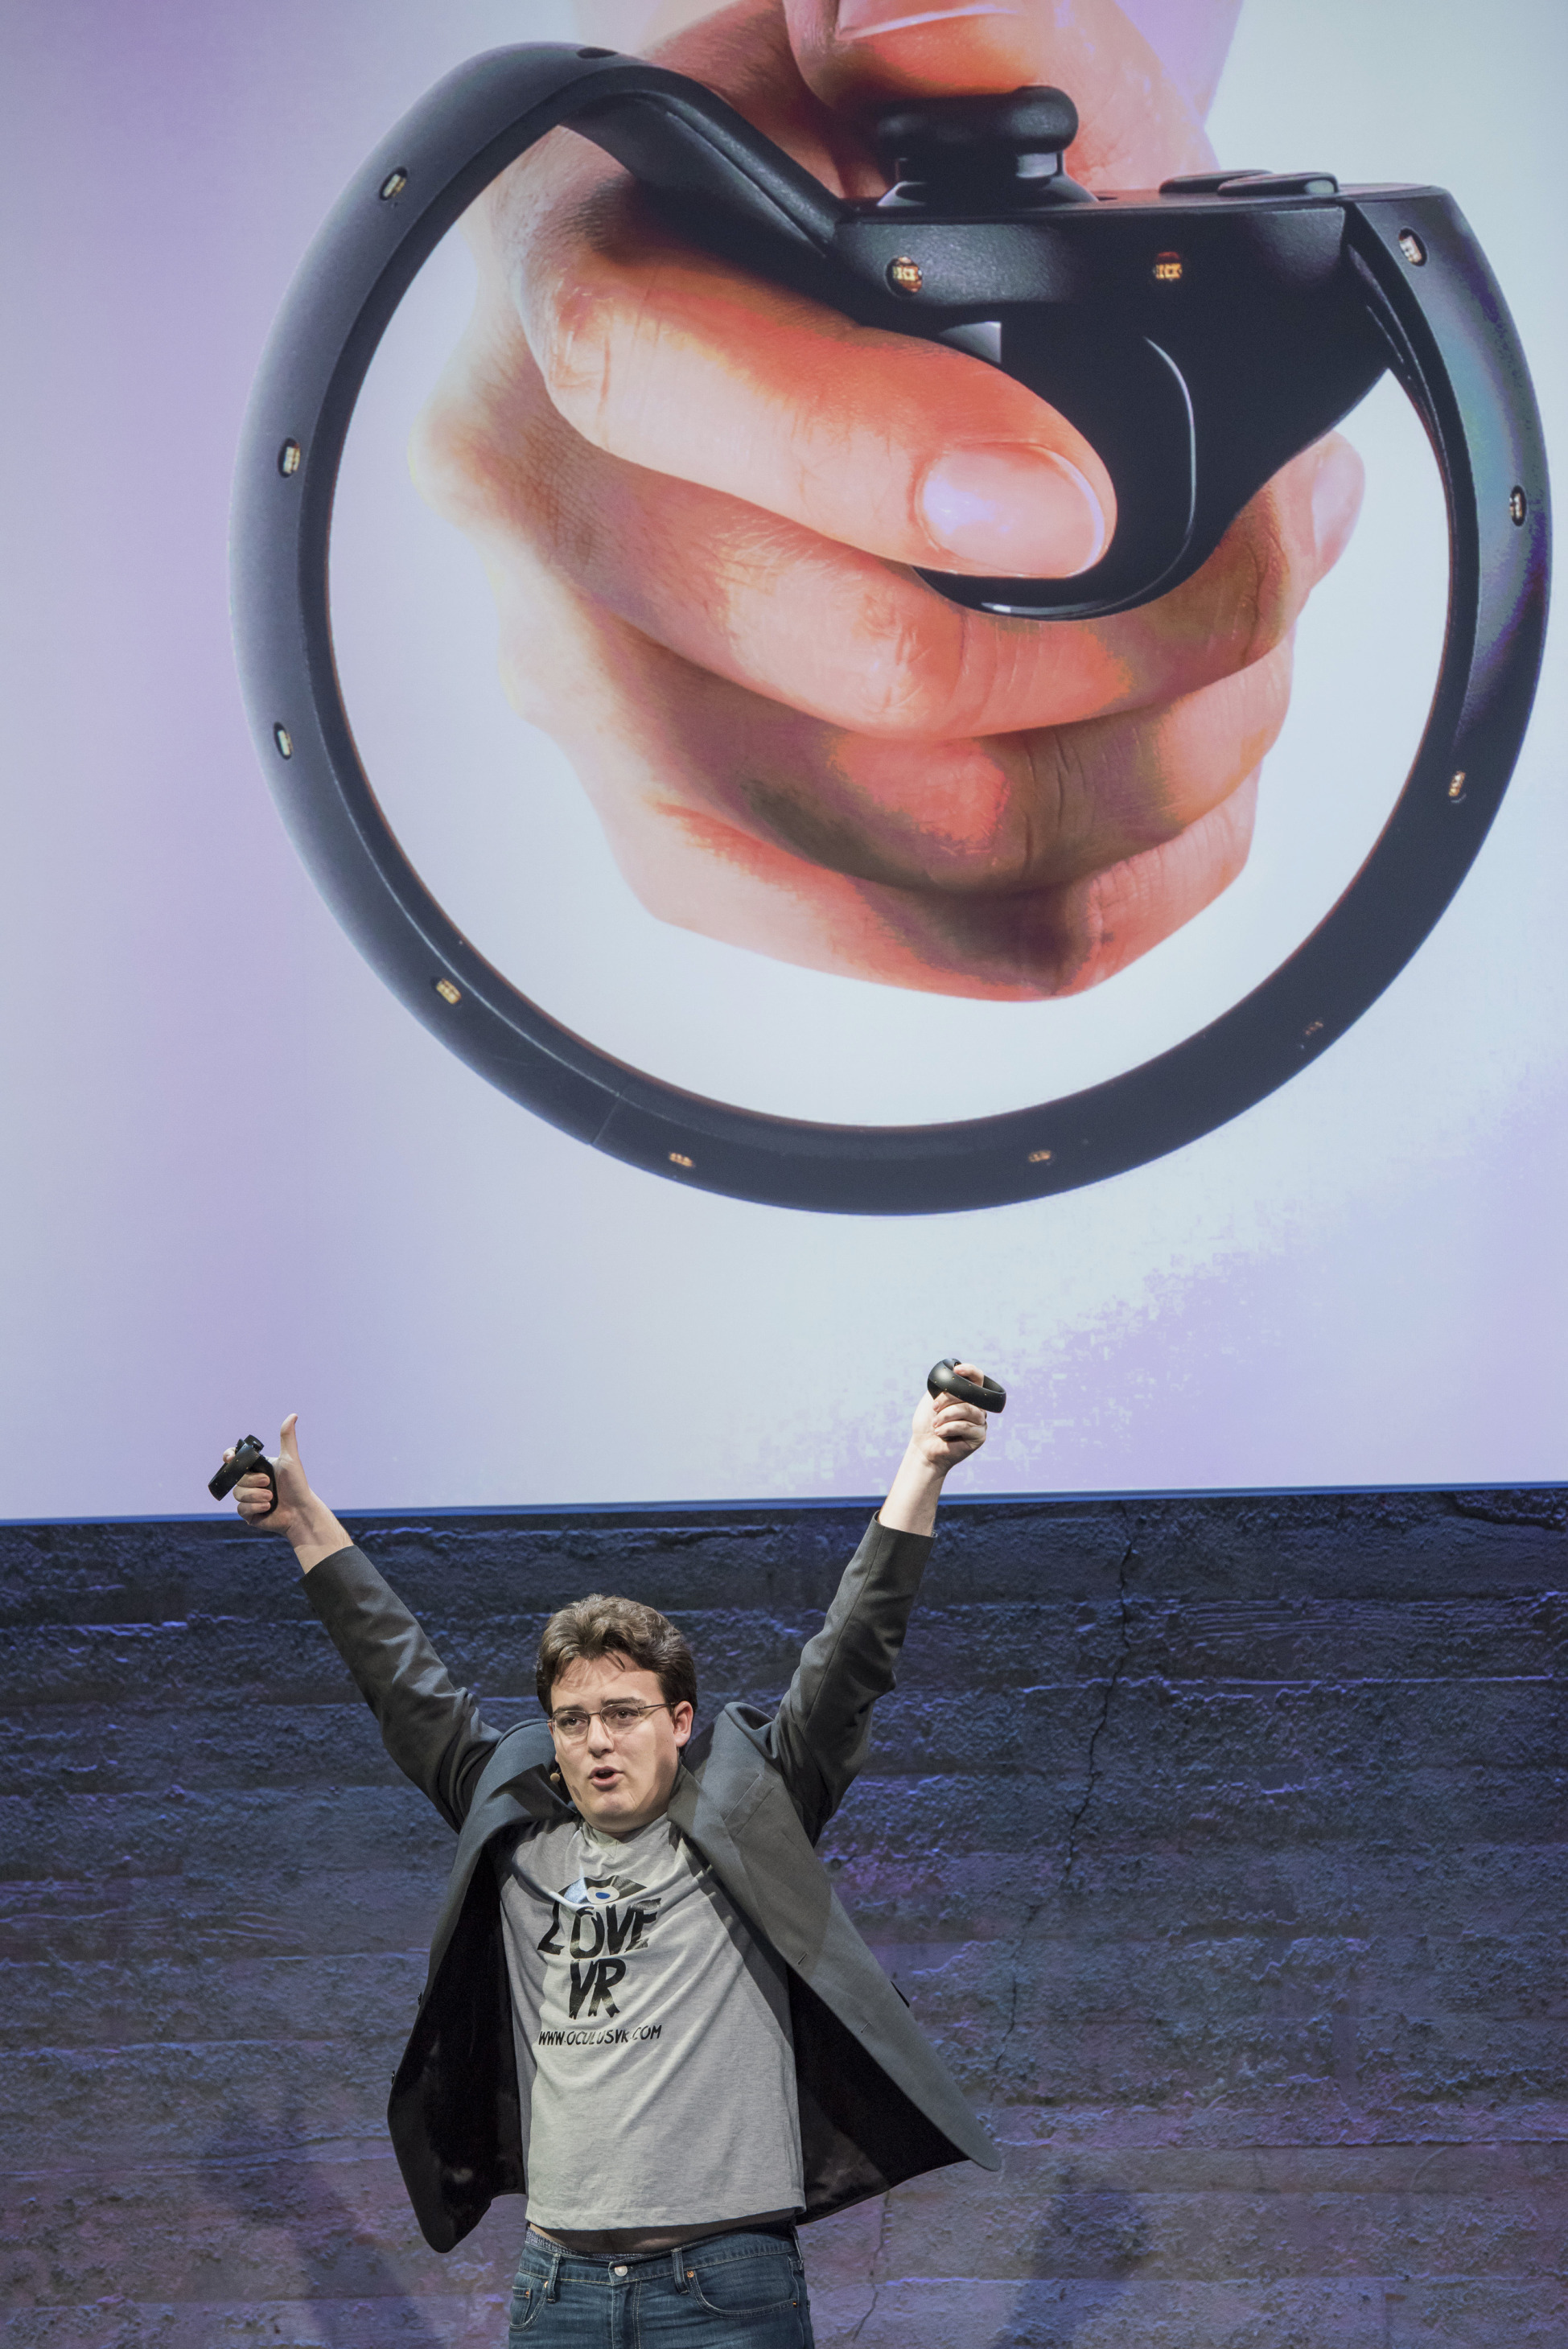 "Palmer Luckey, co-founder of Oculus VR. Inc. and creator of the Oculus Rift, holds up the Oculus Touch controller as he speaks during the Oculus VR Inc. ""Step Into The Rift"" event in San Francisco,   California, U.S., on Thursday, June 11, 2015. Facebook Inc.'s Oculus virtual-reality headsets will work with Microsoft Corp.'s Windows 10 and use the software maker's wireless Xbox game controller. Photographer: David Paul Morris/Bloomberg  *** Local Caption *** Palmer Luckey"